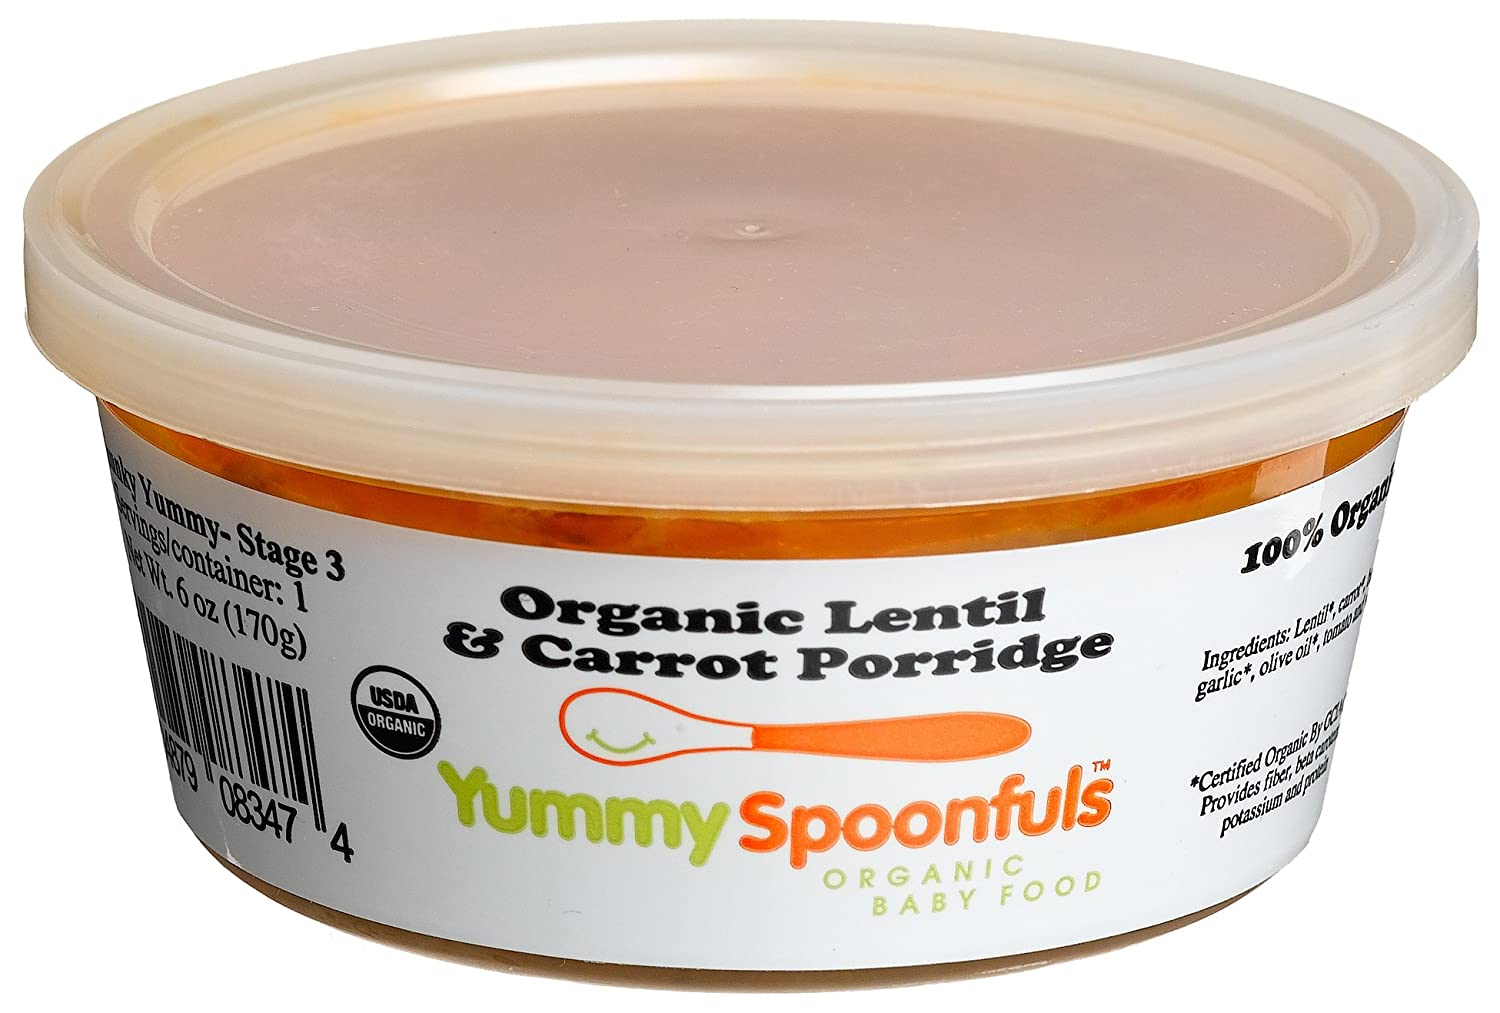 Amazon.com : Yummy Spoonfuls Chunky Yummy Organic Sweet Potato & Adzuki Bea, 6-Ounce Tubs (Pack of 12) : Baby Food Vegetables : Grocery & Gourmet Food